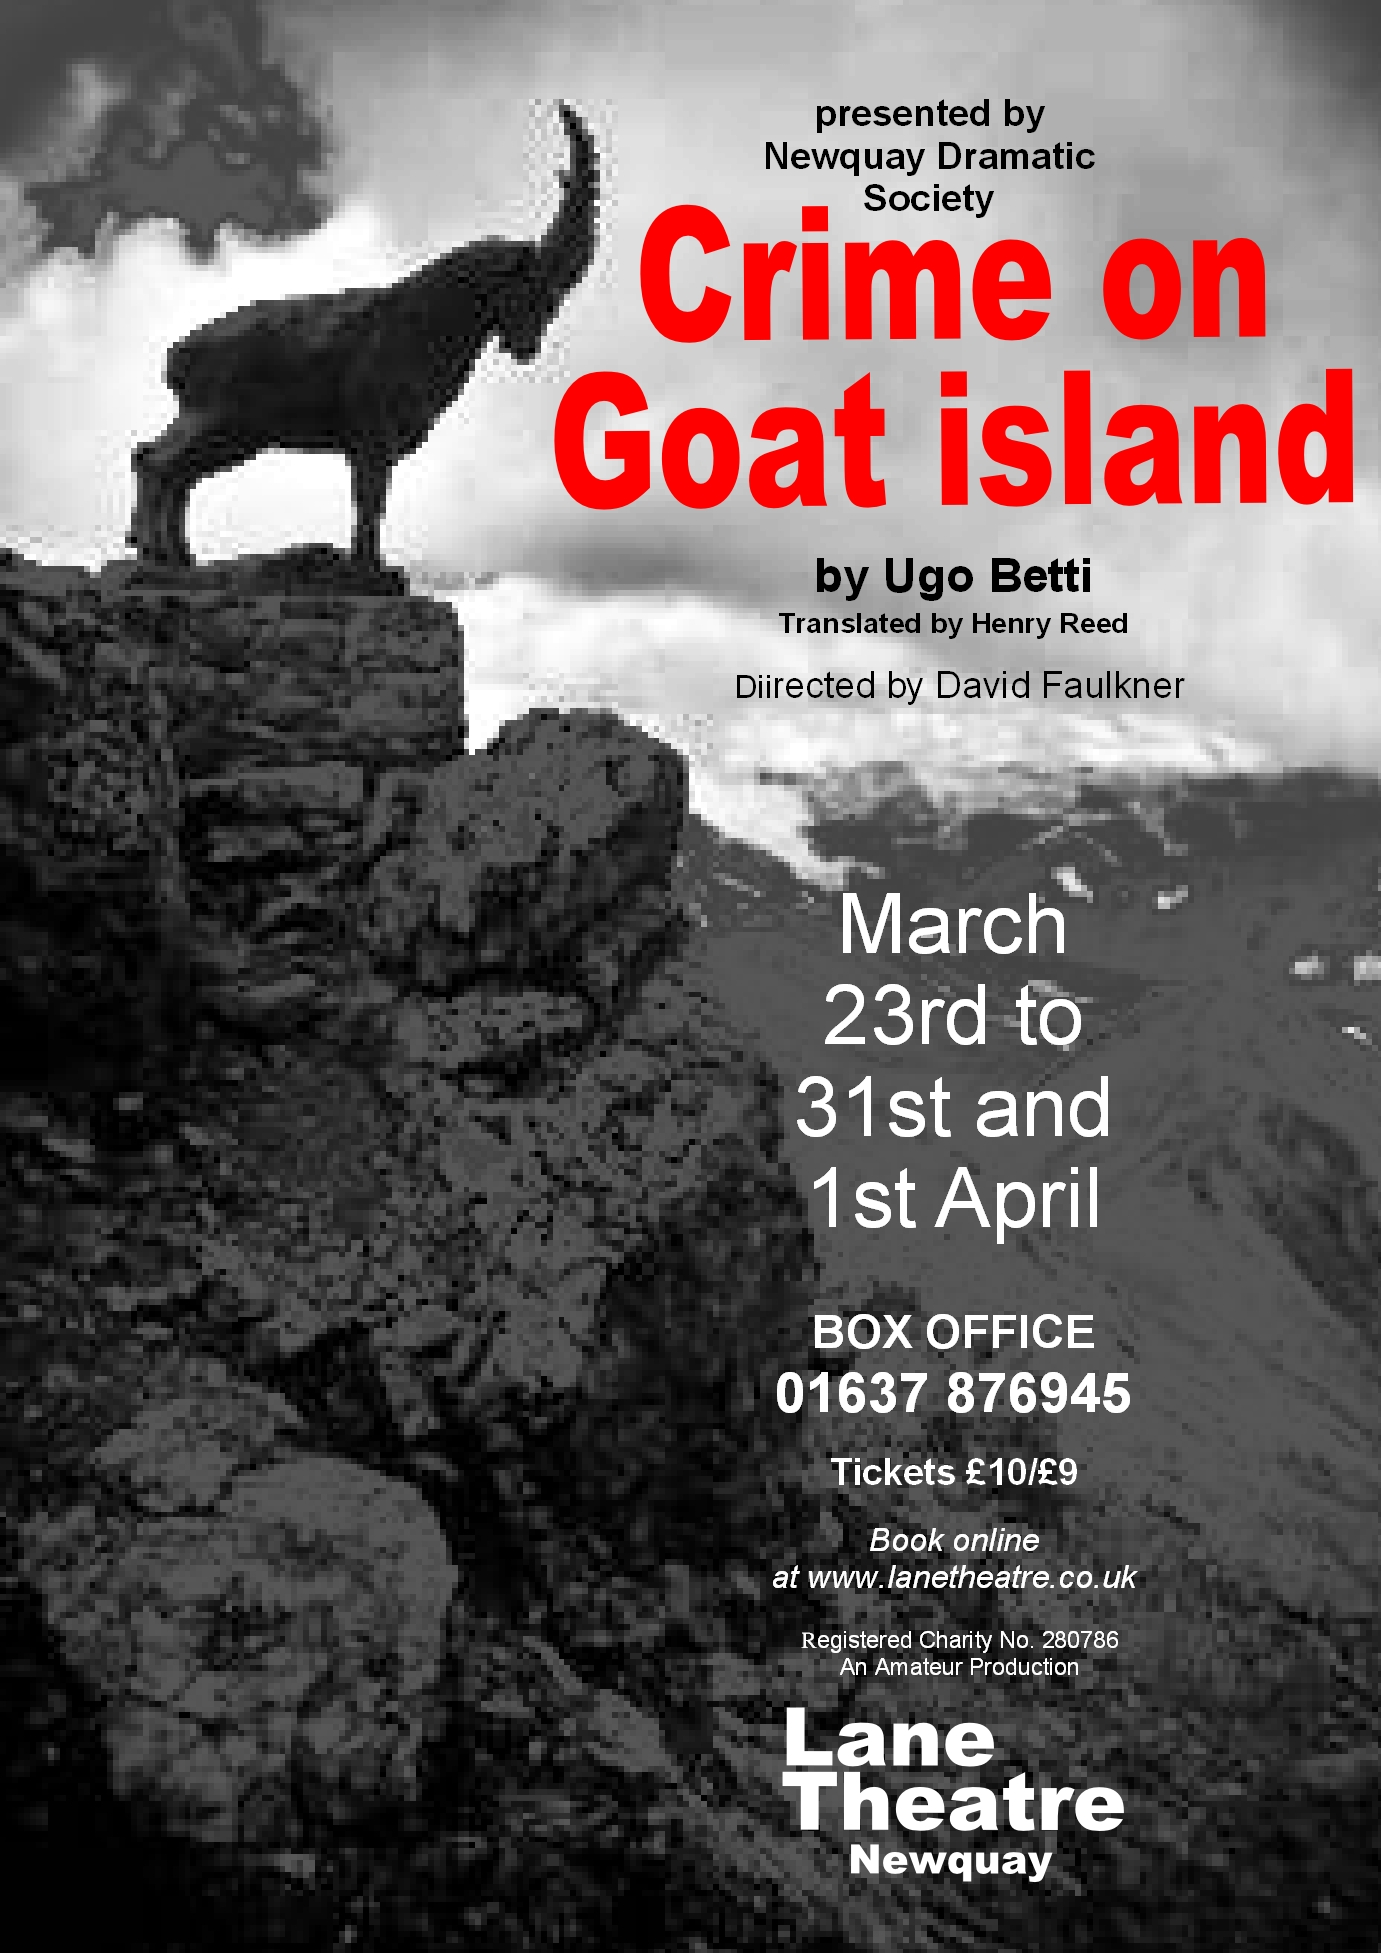 Crime on goat island